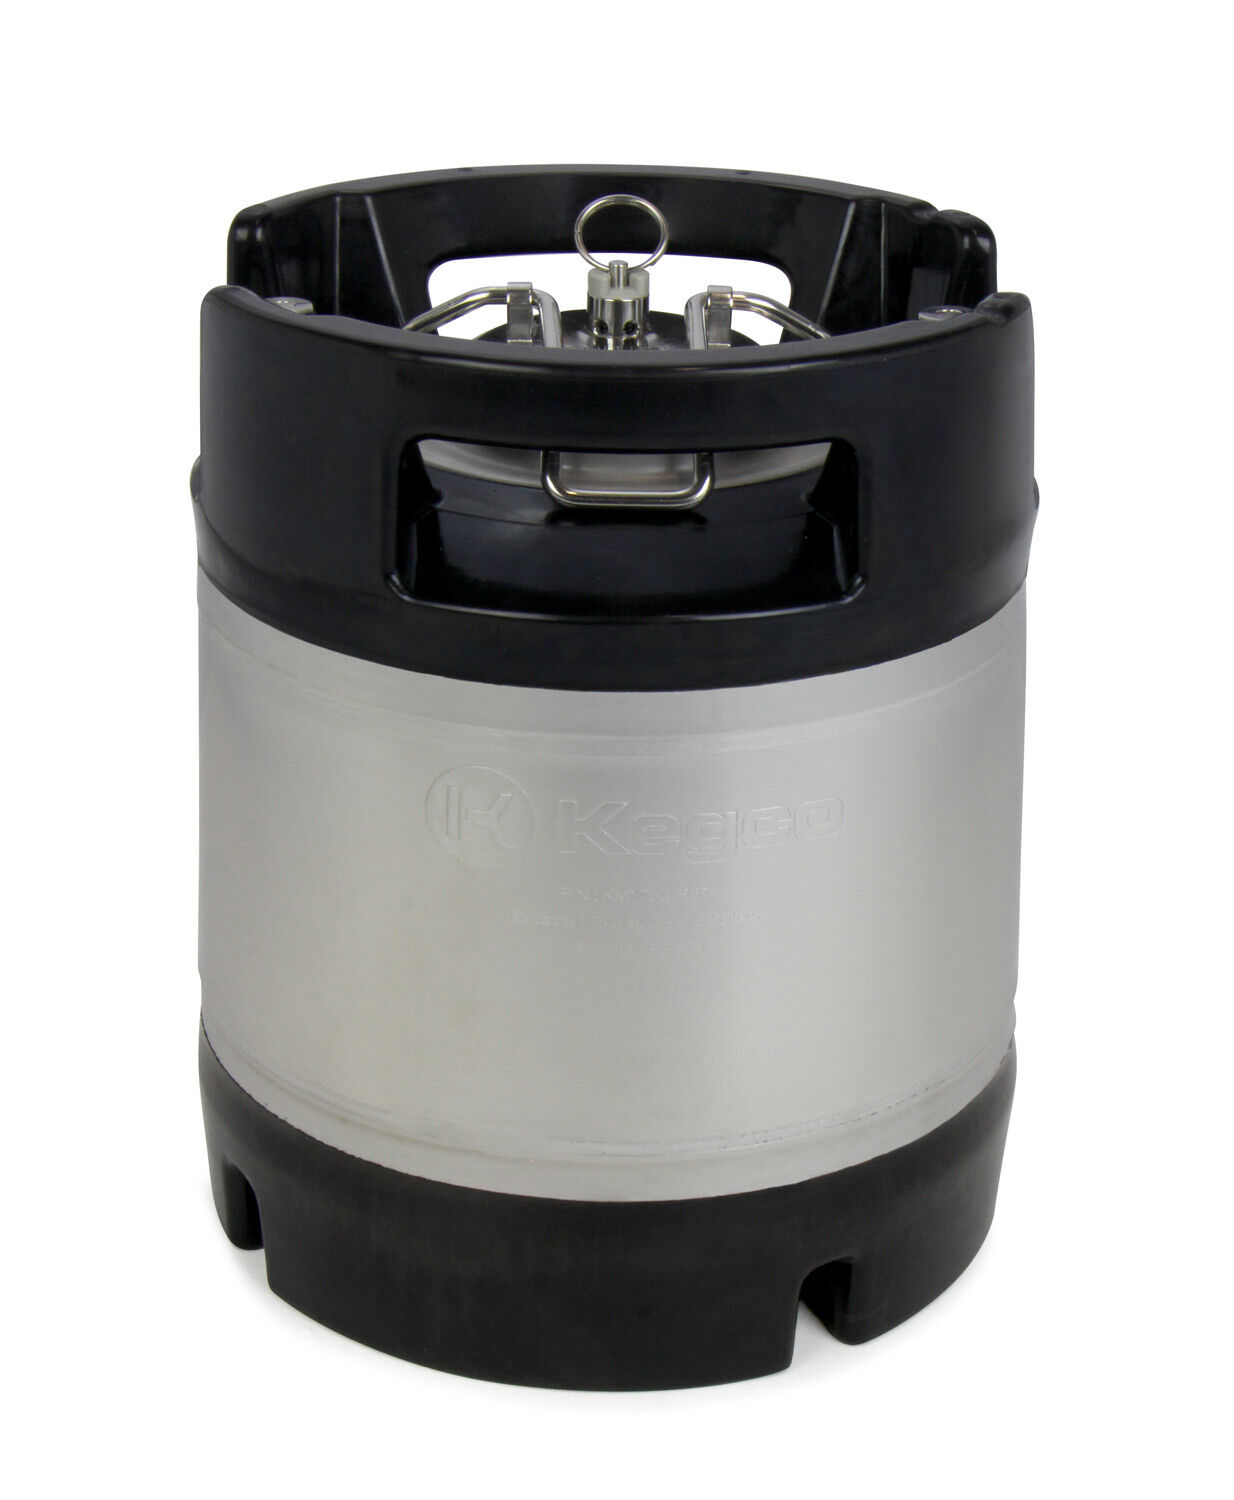 s l1600 New Kegco 1.75 Gallon Home Brew Ball Lock Keg with Rubber Handle